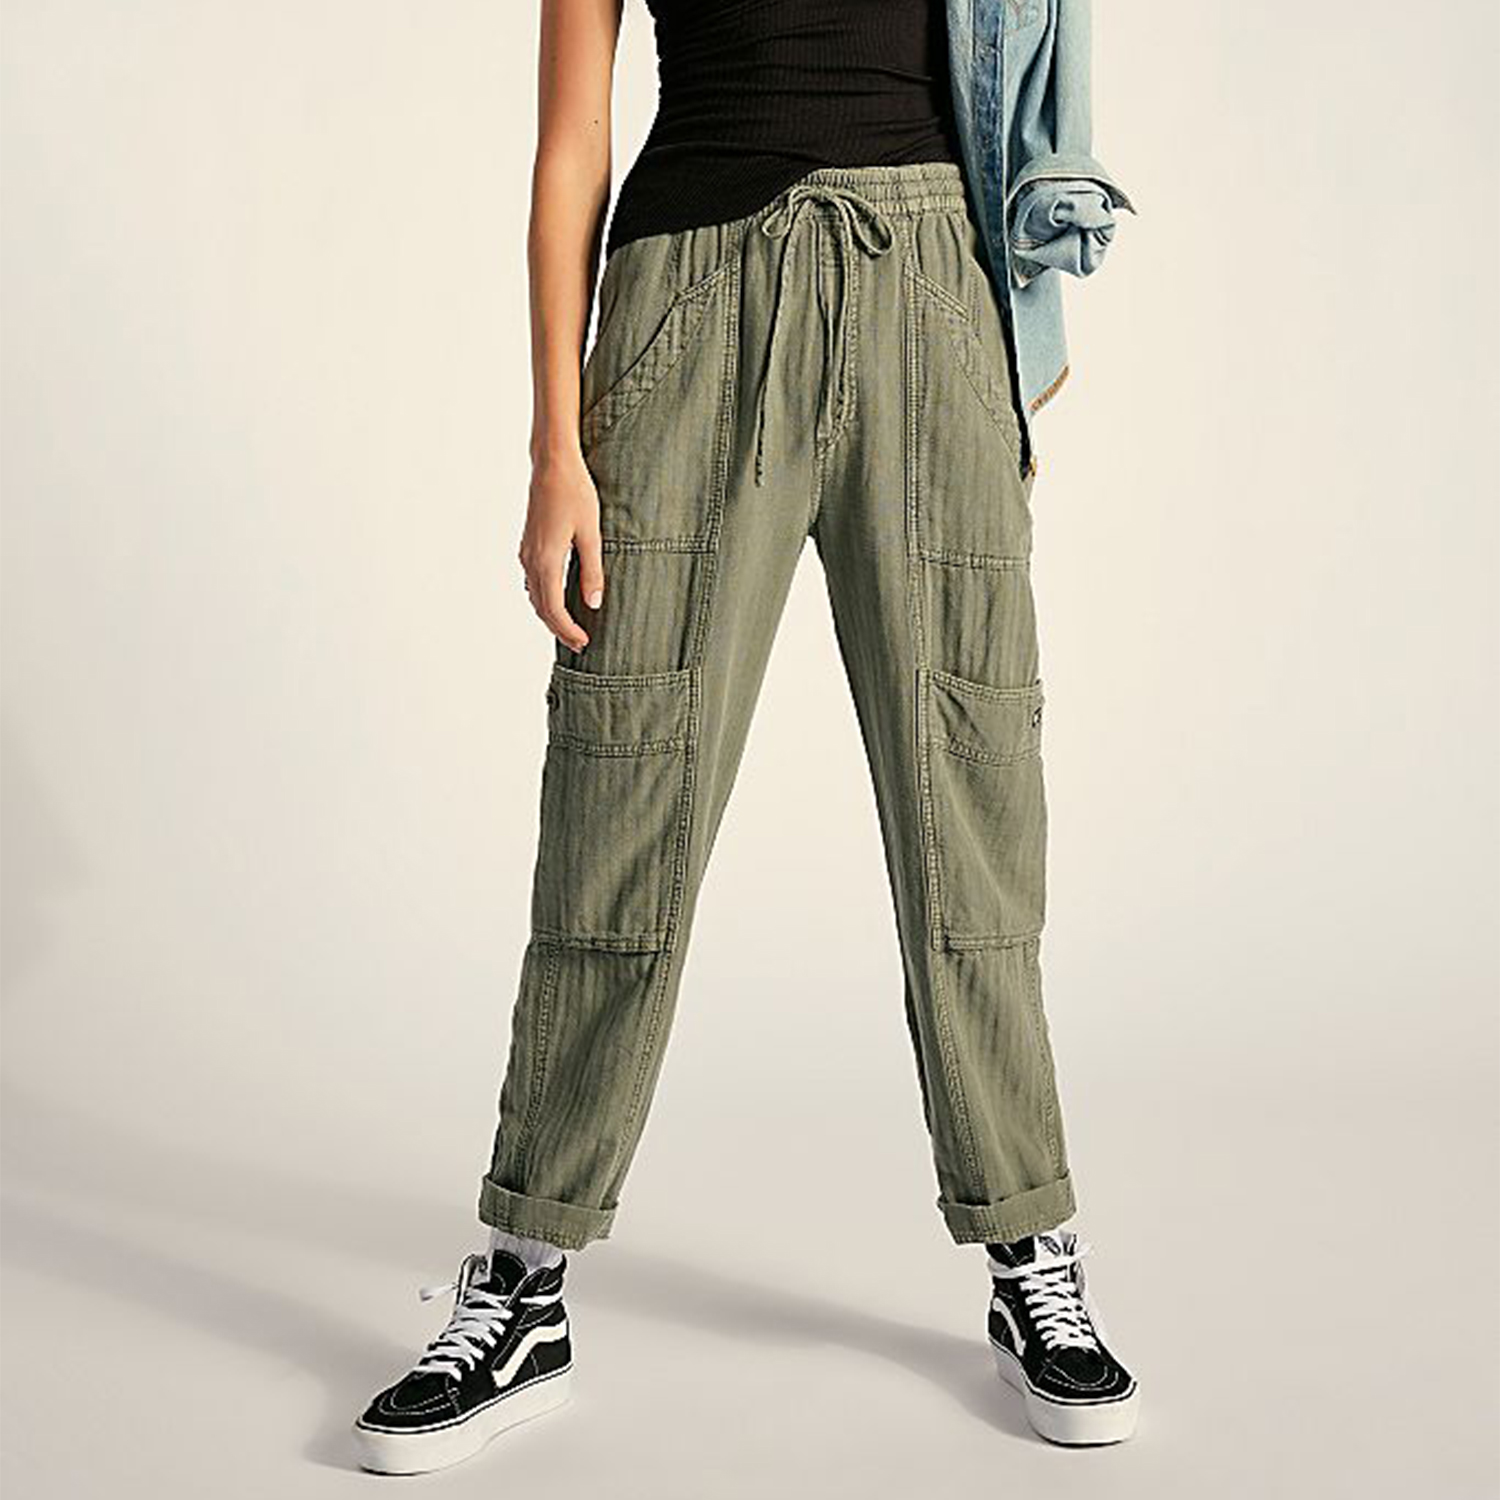 Feelin' Good Utility Pull-On Pants Free People